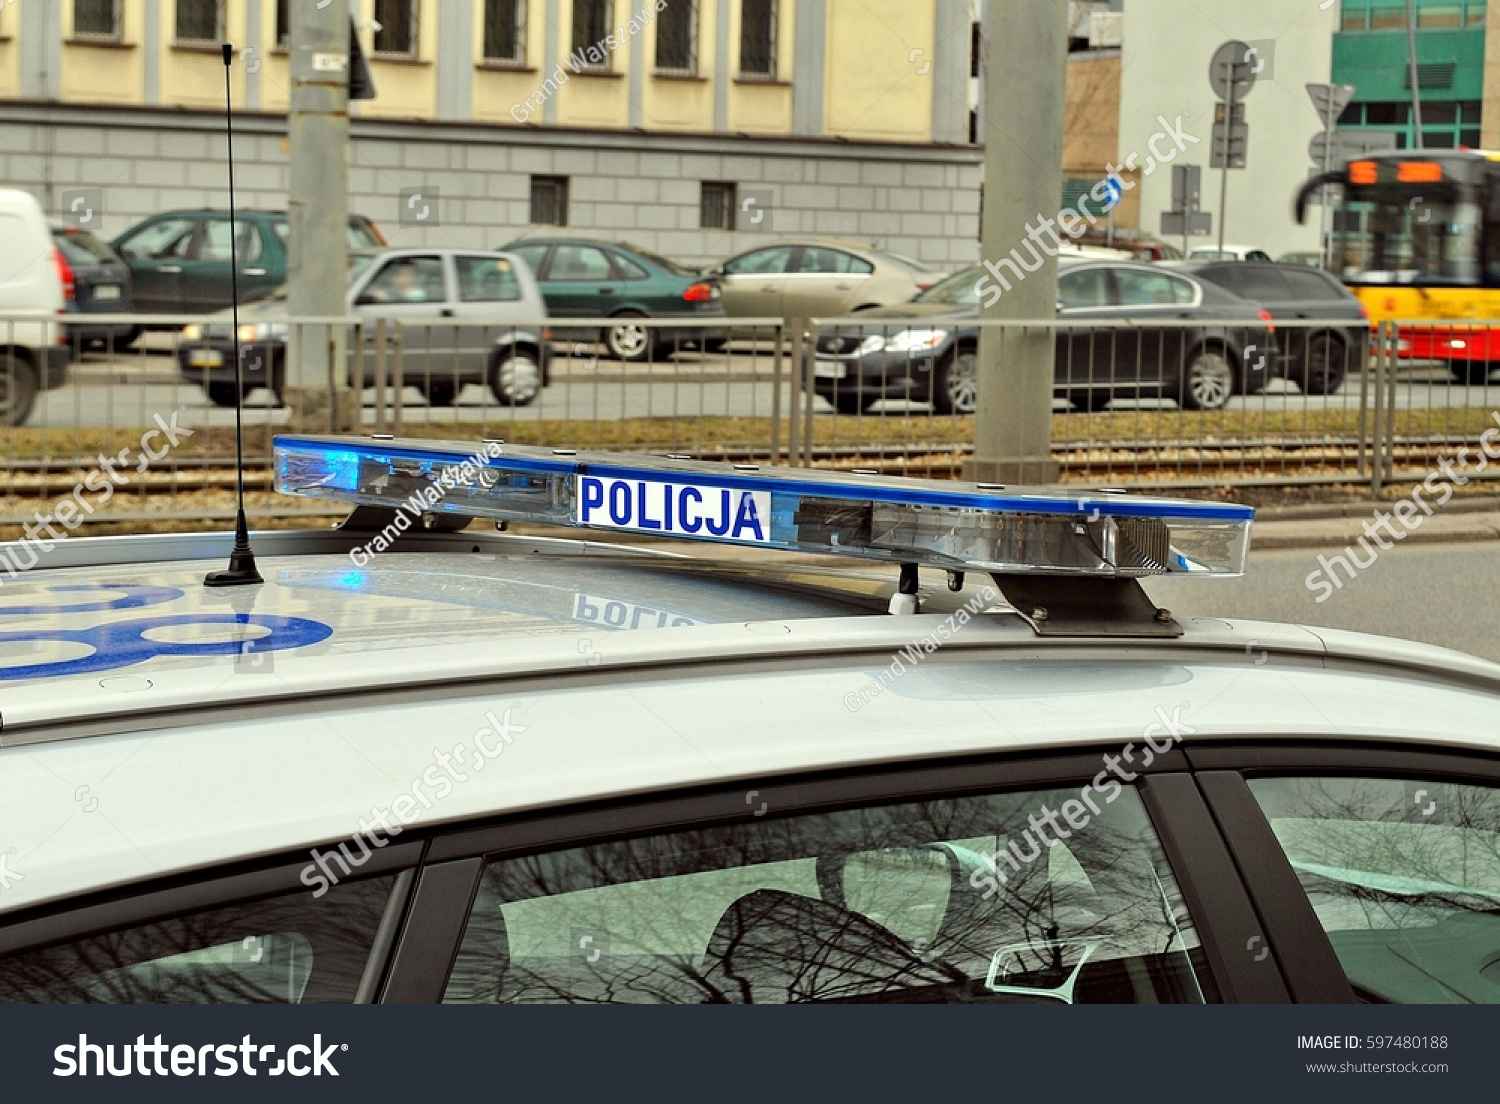 blue flashing sirens police car during stock photo 597480188